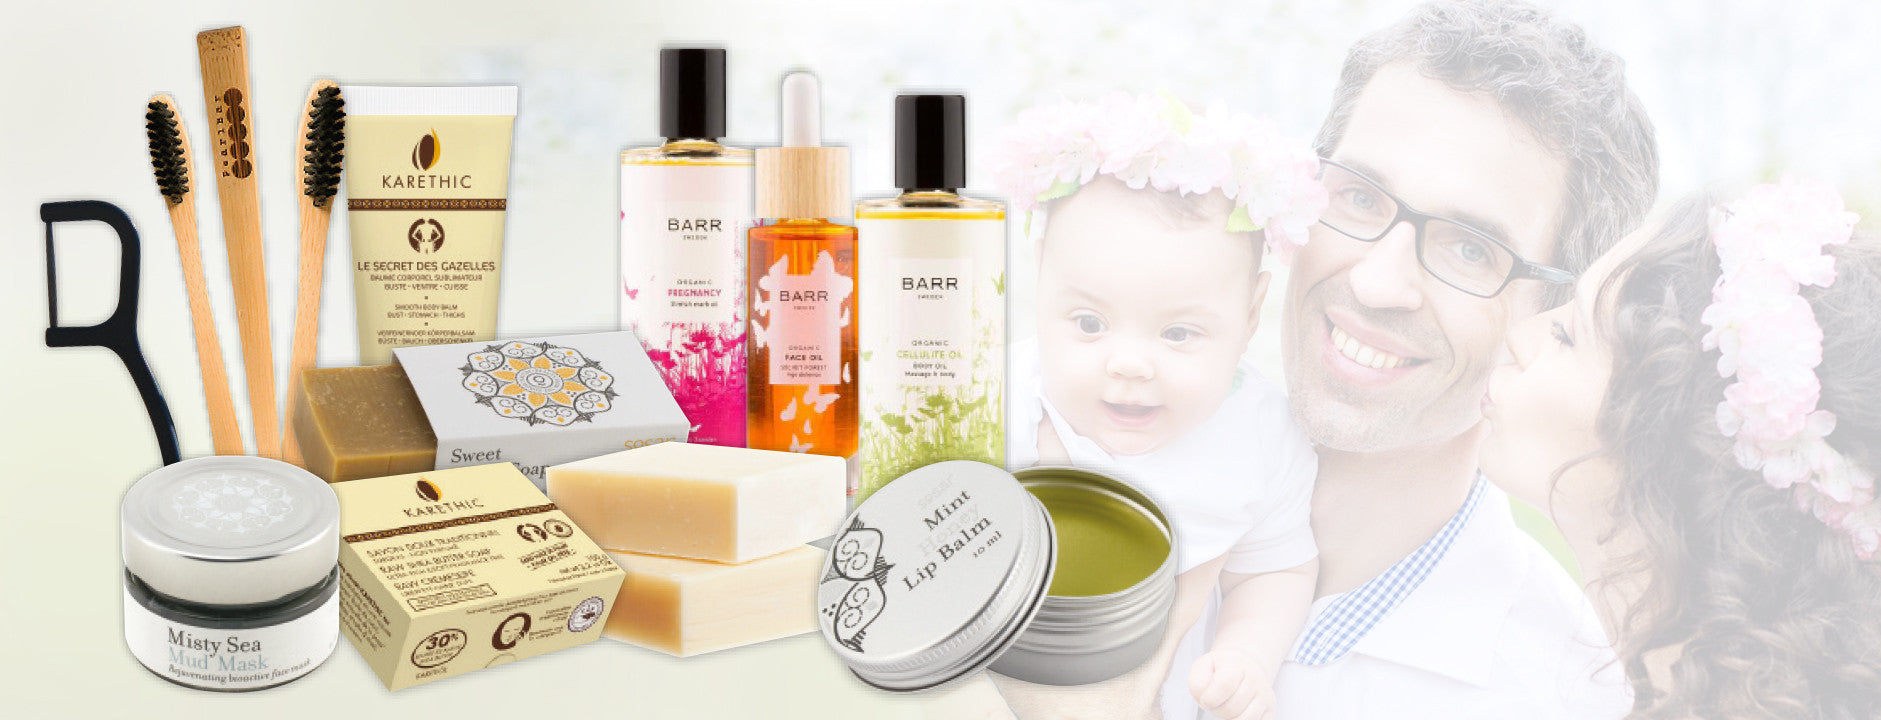 natural body care products fror the family